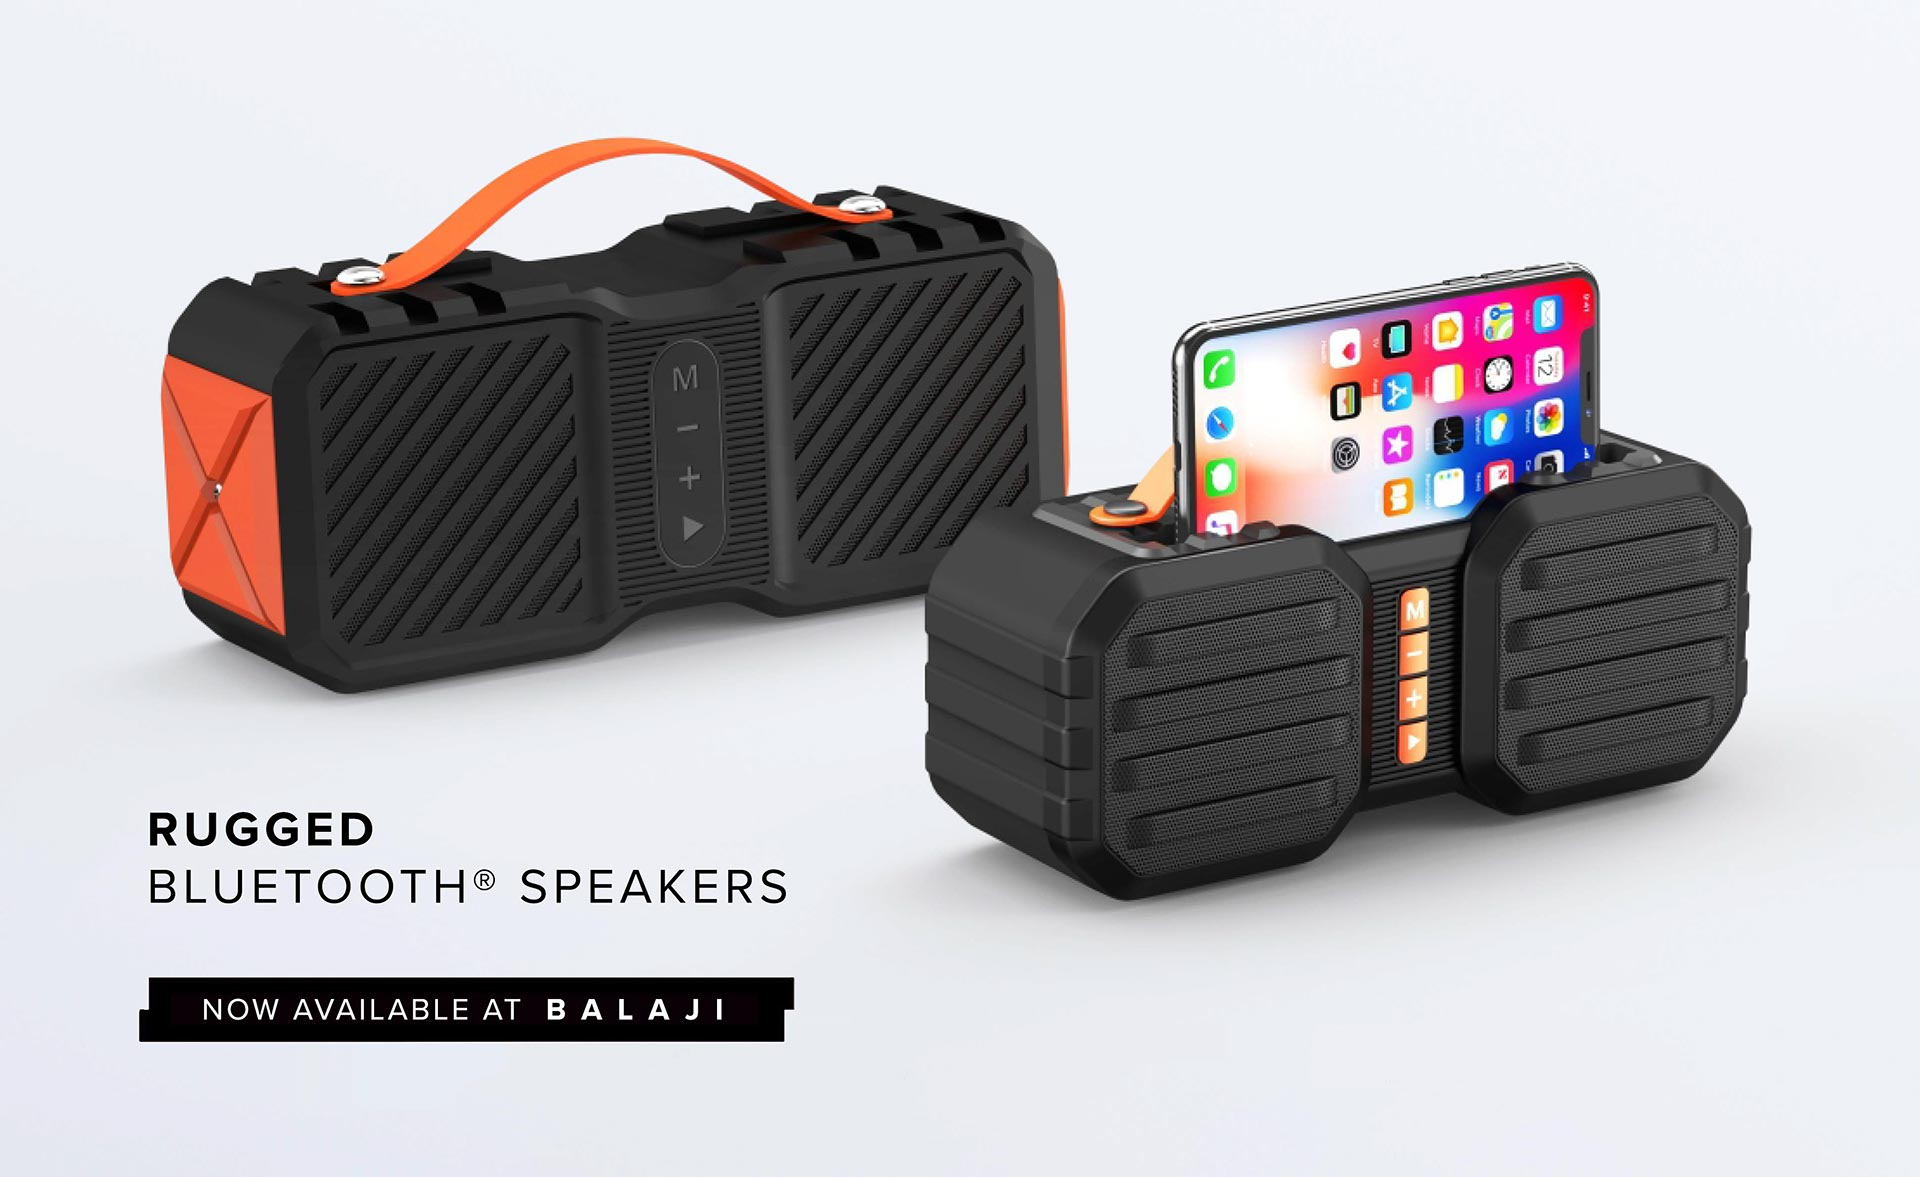 New Rugged Bluetooth Speakers from HAVIT